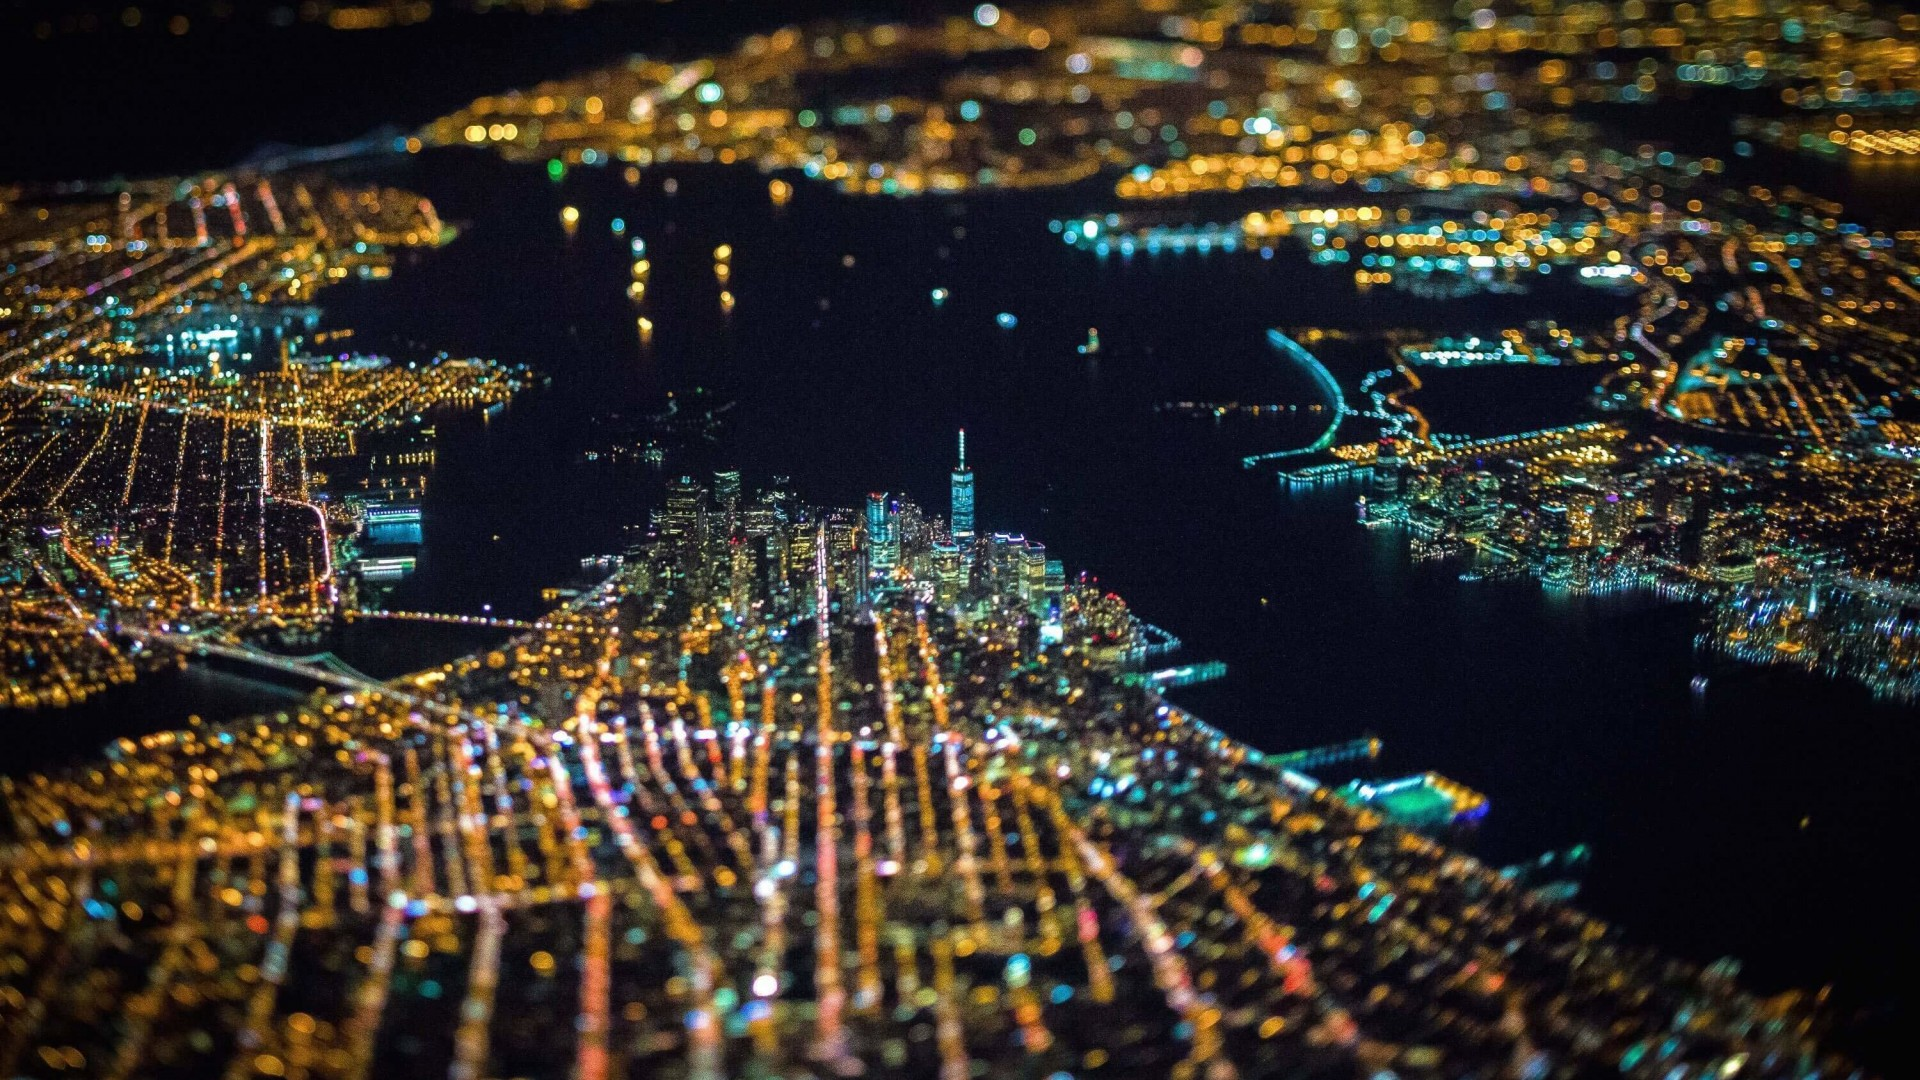 New York City From Above Wallpaper for Desktop 1920x1080